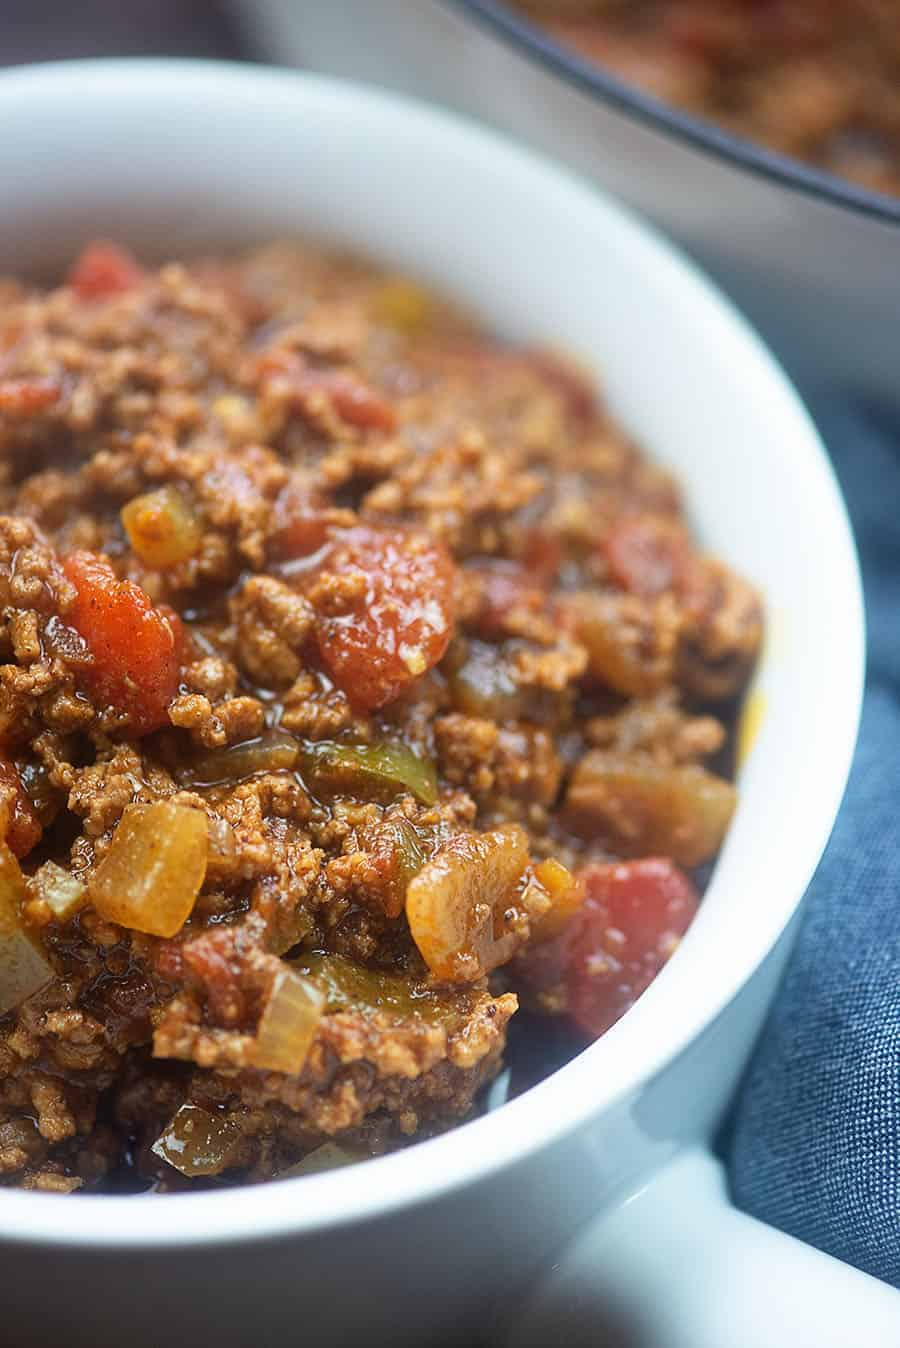 This keto chili recipe is plenty hearty and filling without the beans. Bet you don't even miss them.